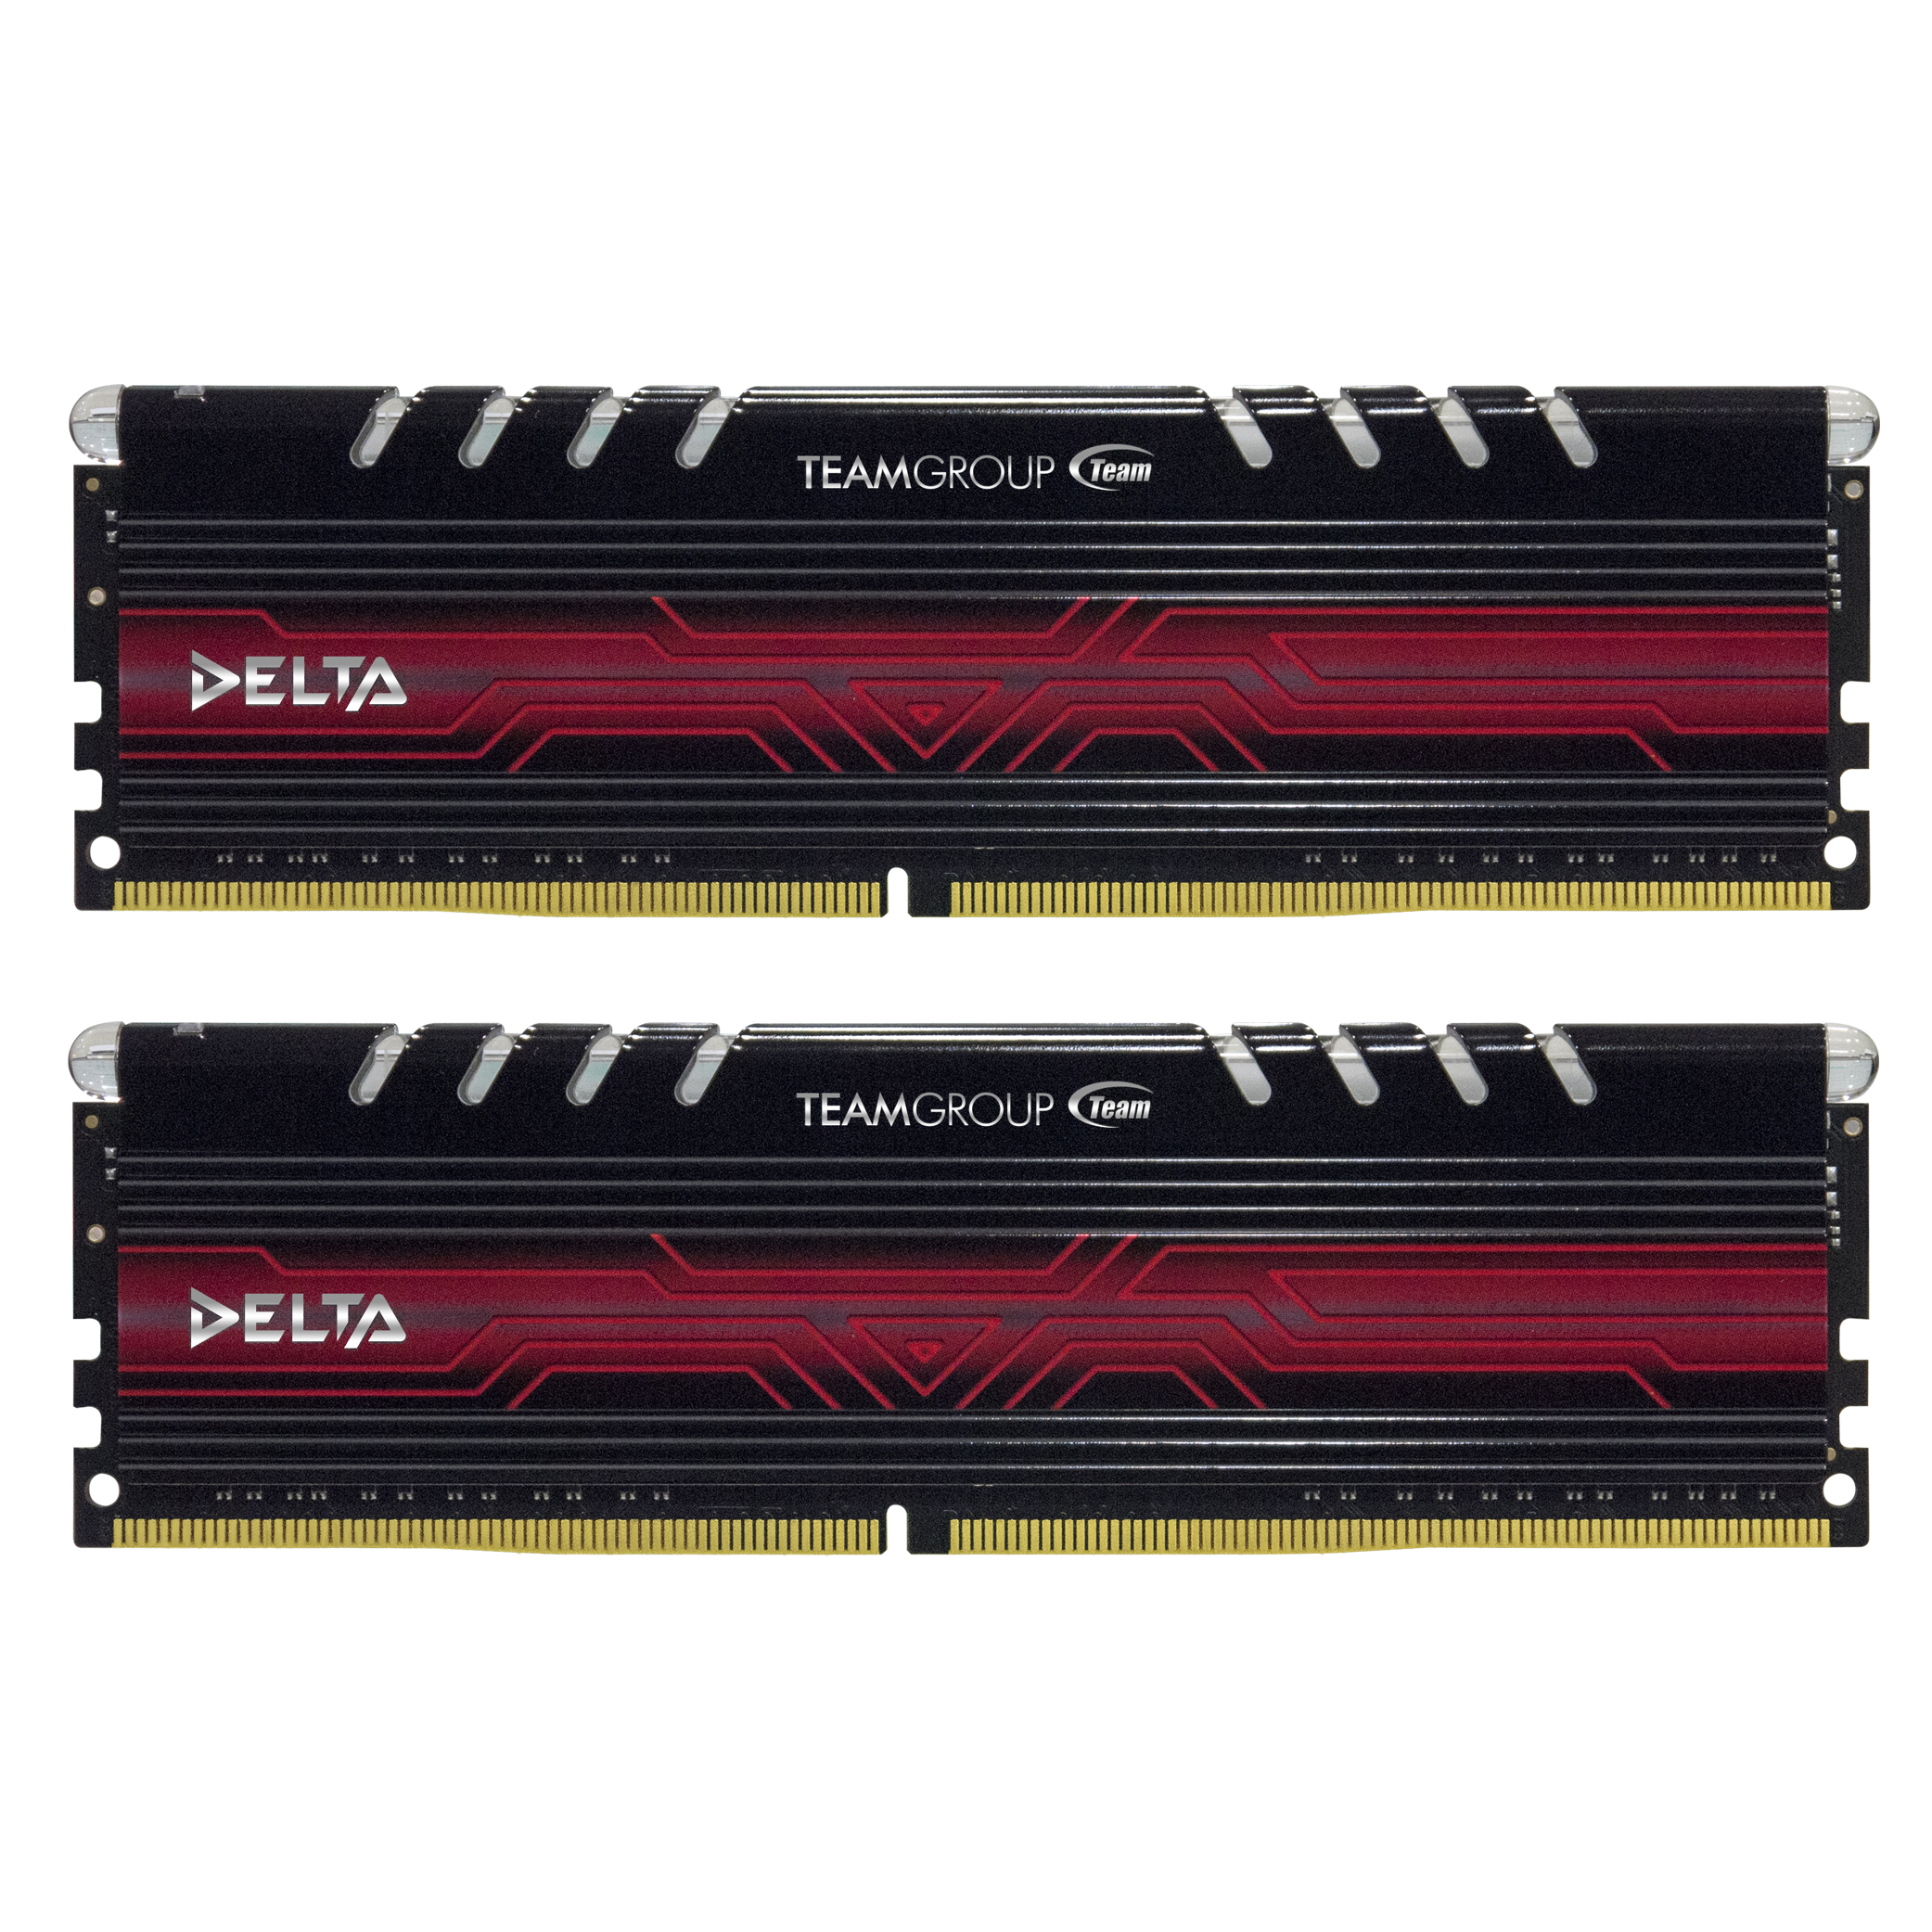 Team Group Delta 8GB (2x4GB) DDR4 PC4-24000C16 3000MHz Dual Channel Kit